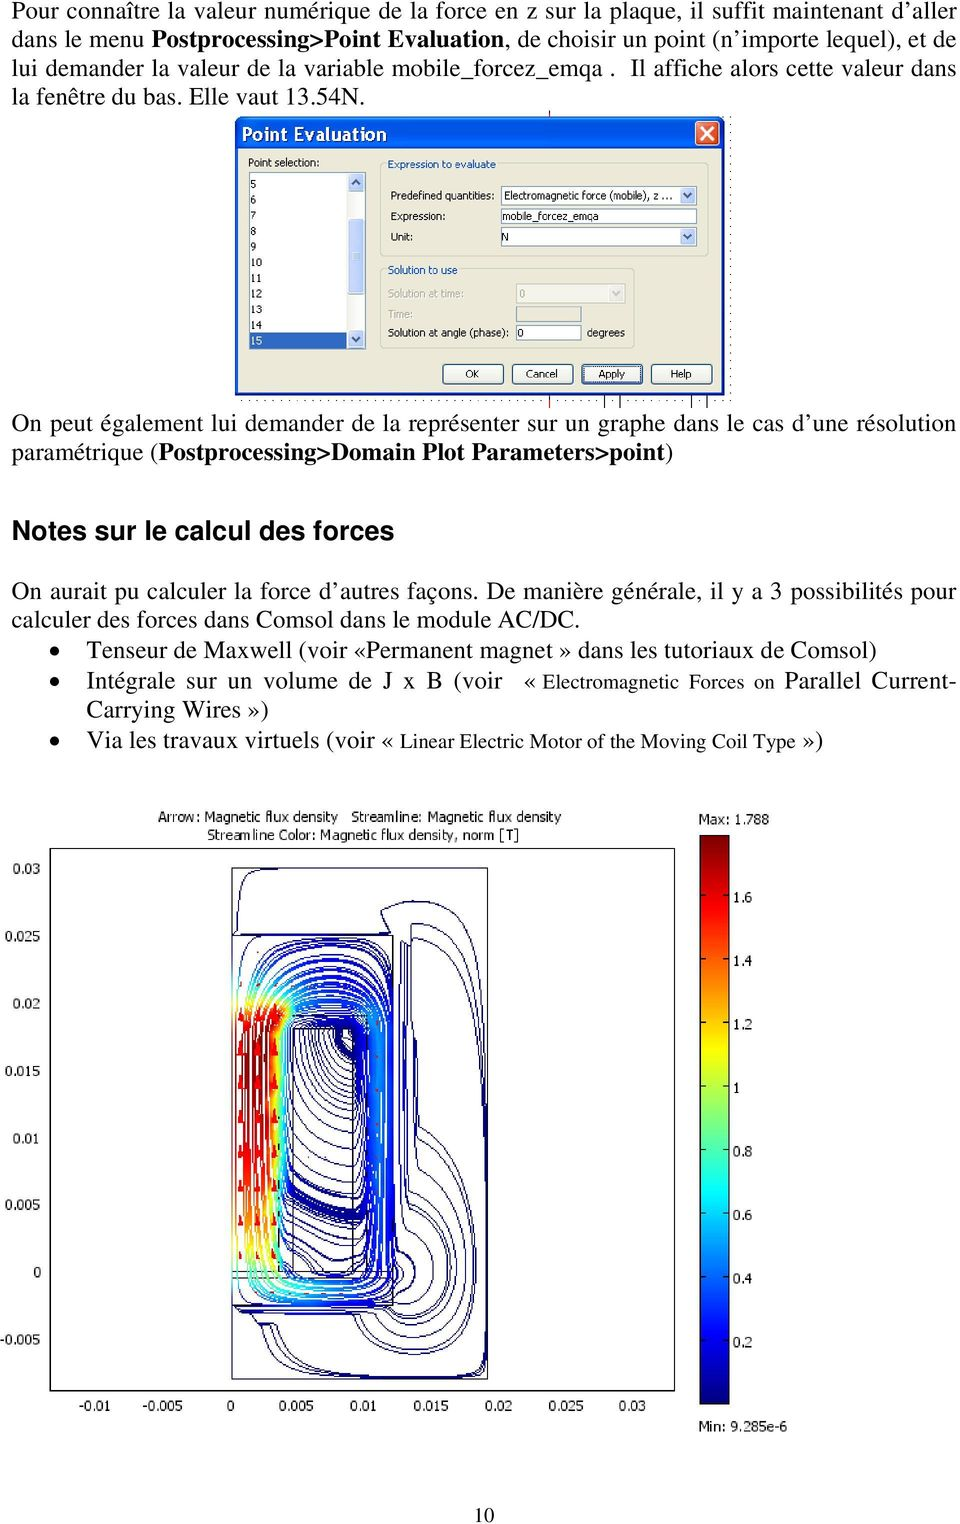 On peut également lui demander de la représenter sur un graphe dans le cas d une résolution paramétrique (Postprocessing>Domain Plot Parameters>point) Notes sur le calcul des forces On aurait pu